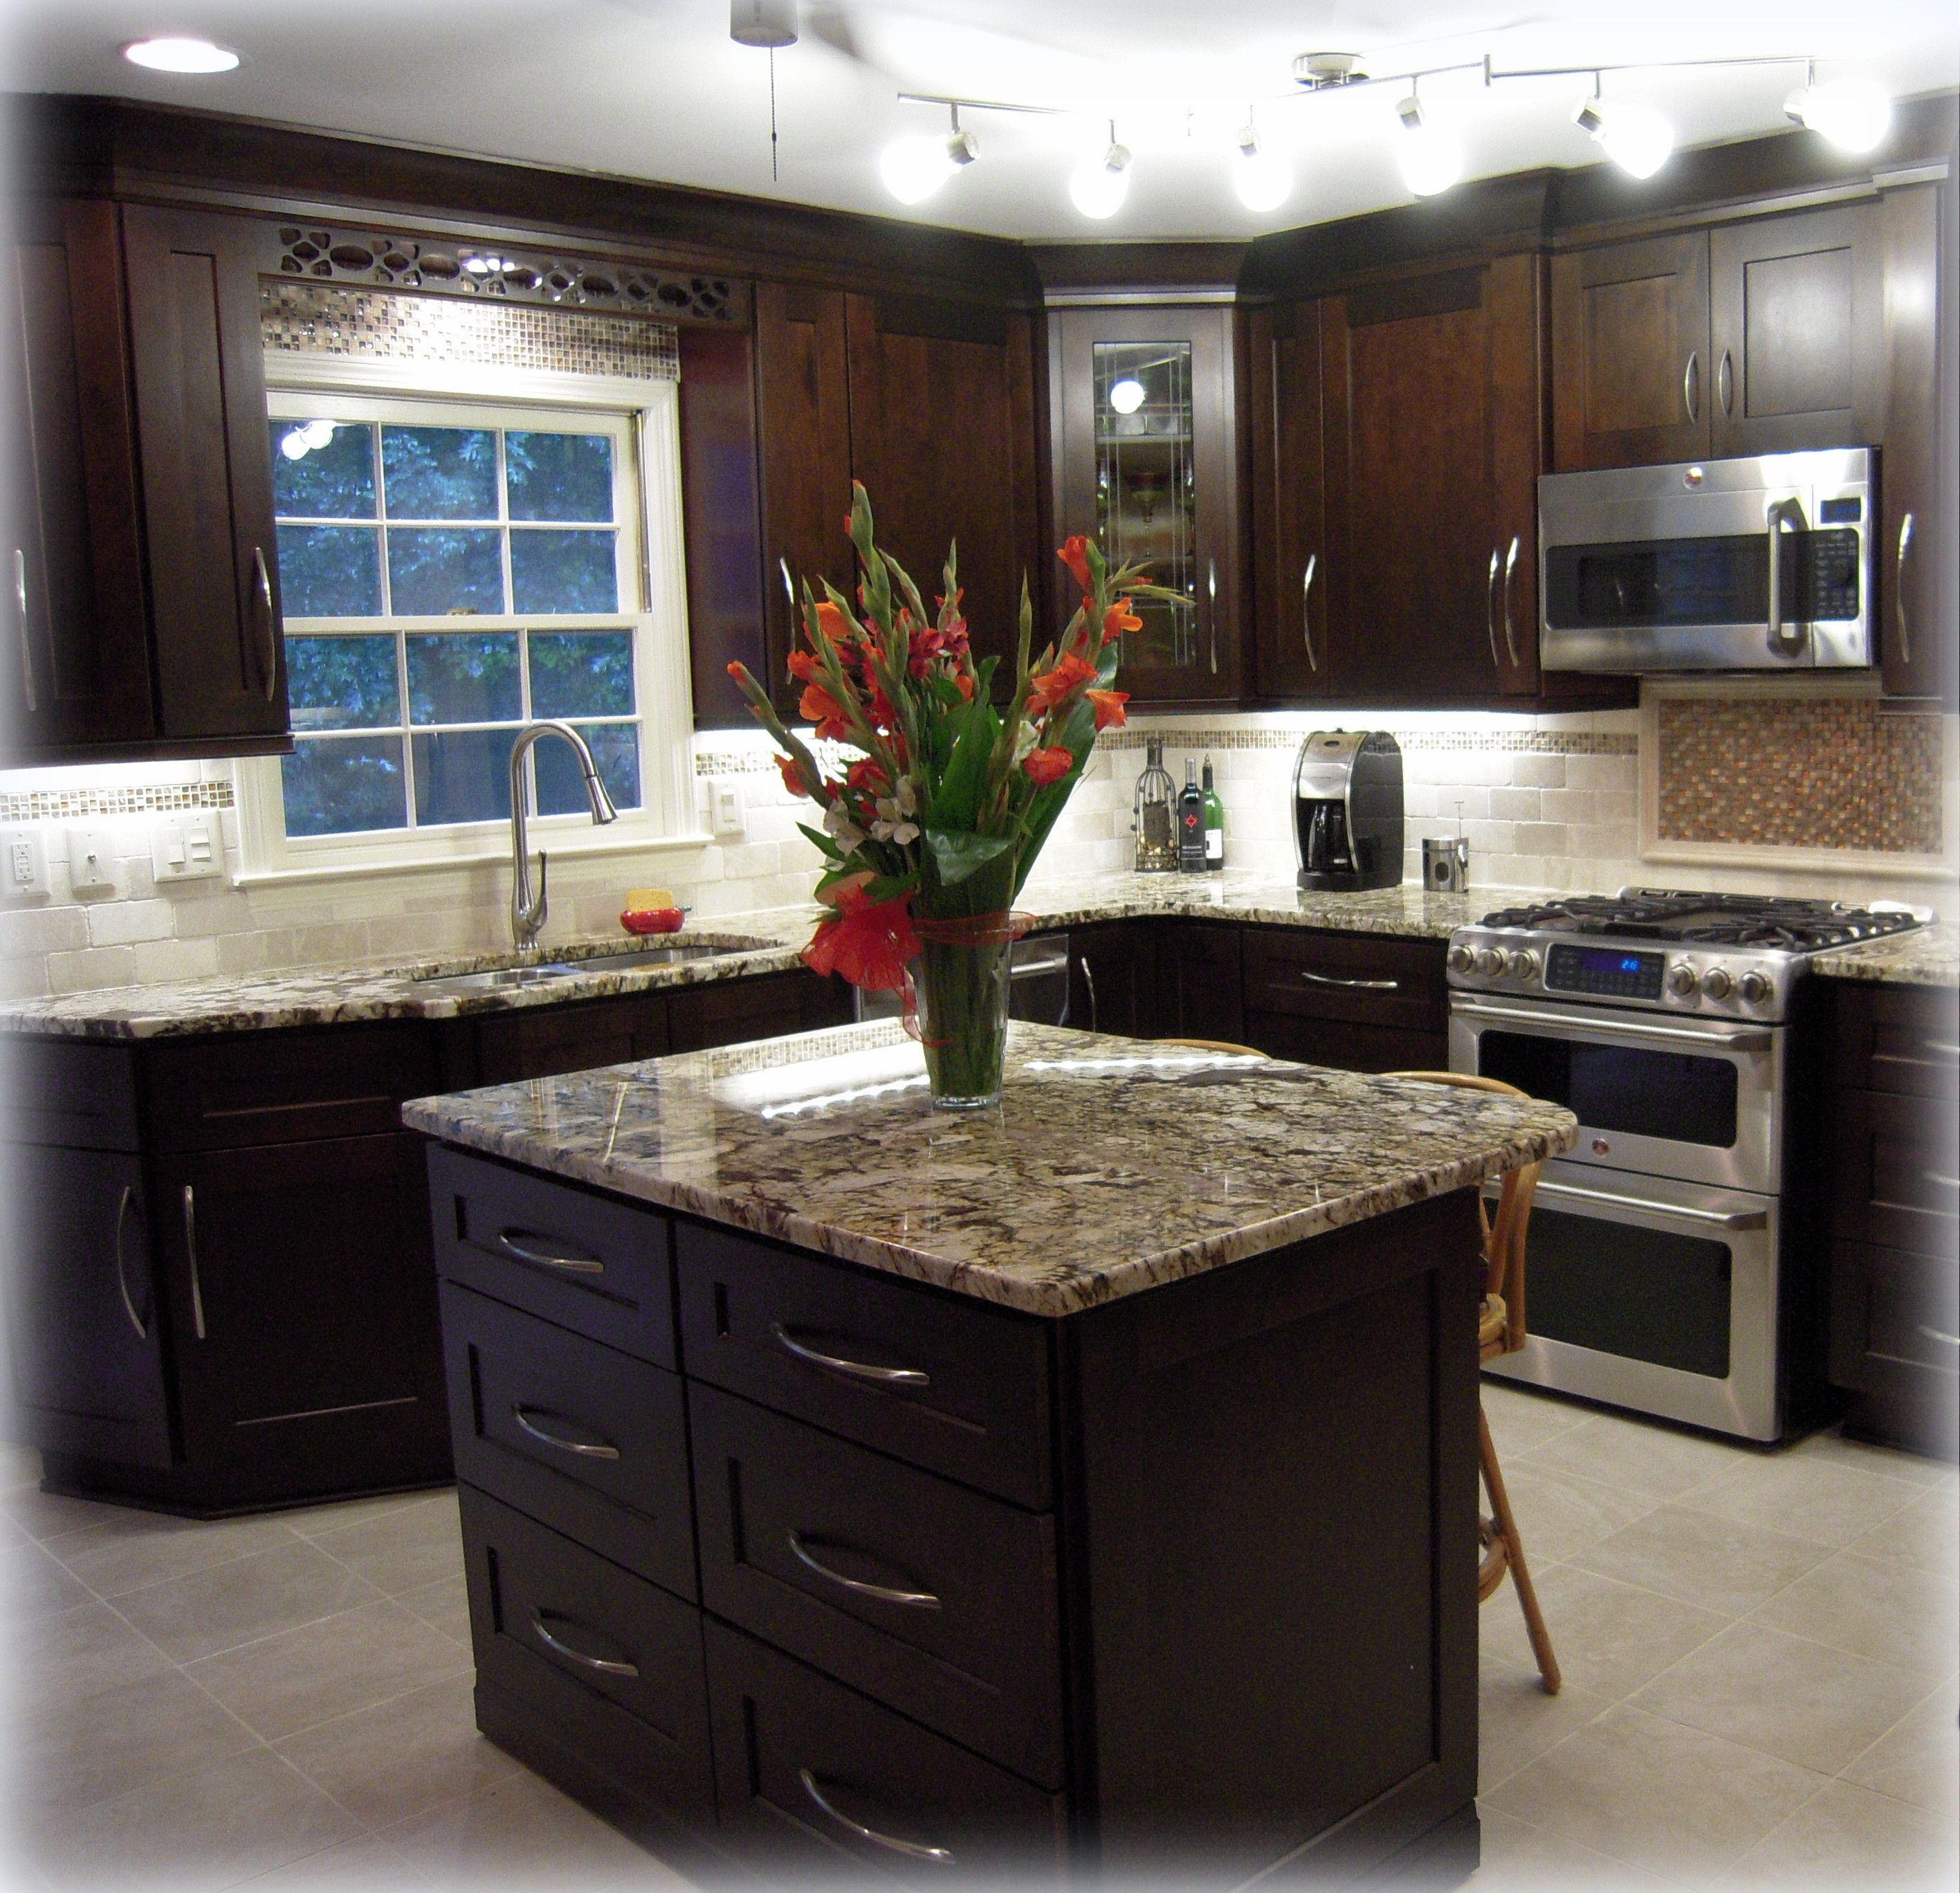 S Kitchen Cabinets Classy 100  Under Kitchen Cabinet Lights   Kitchen Elegant Two Tone Decorating Design